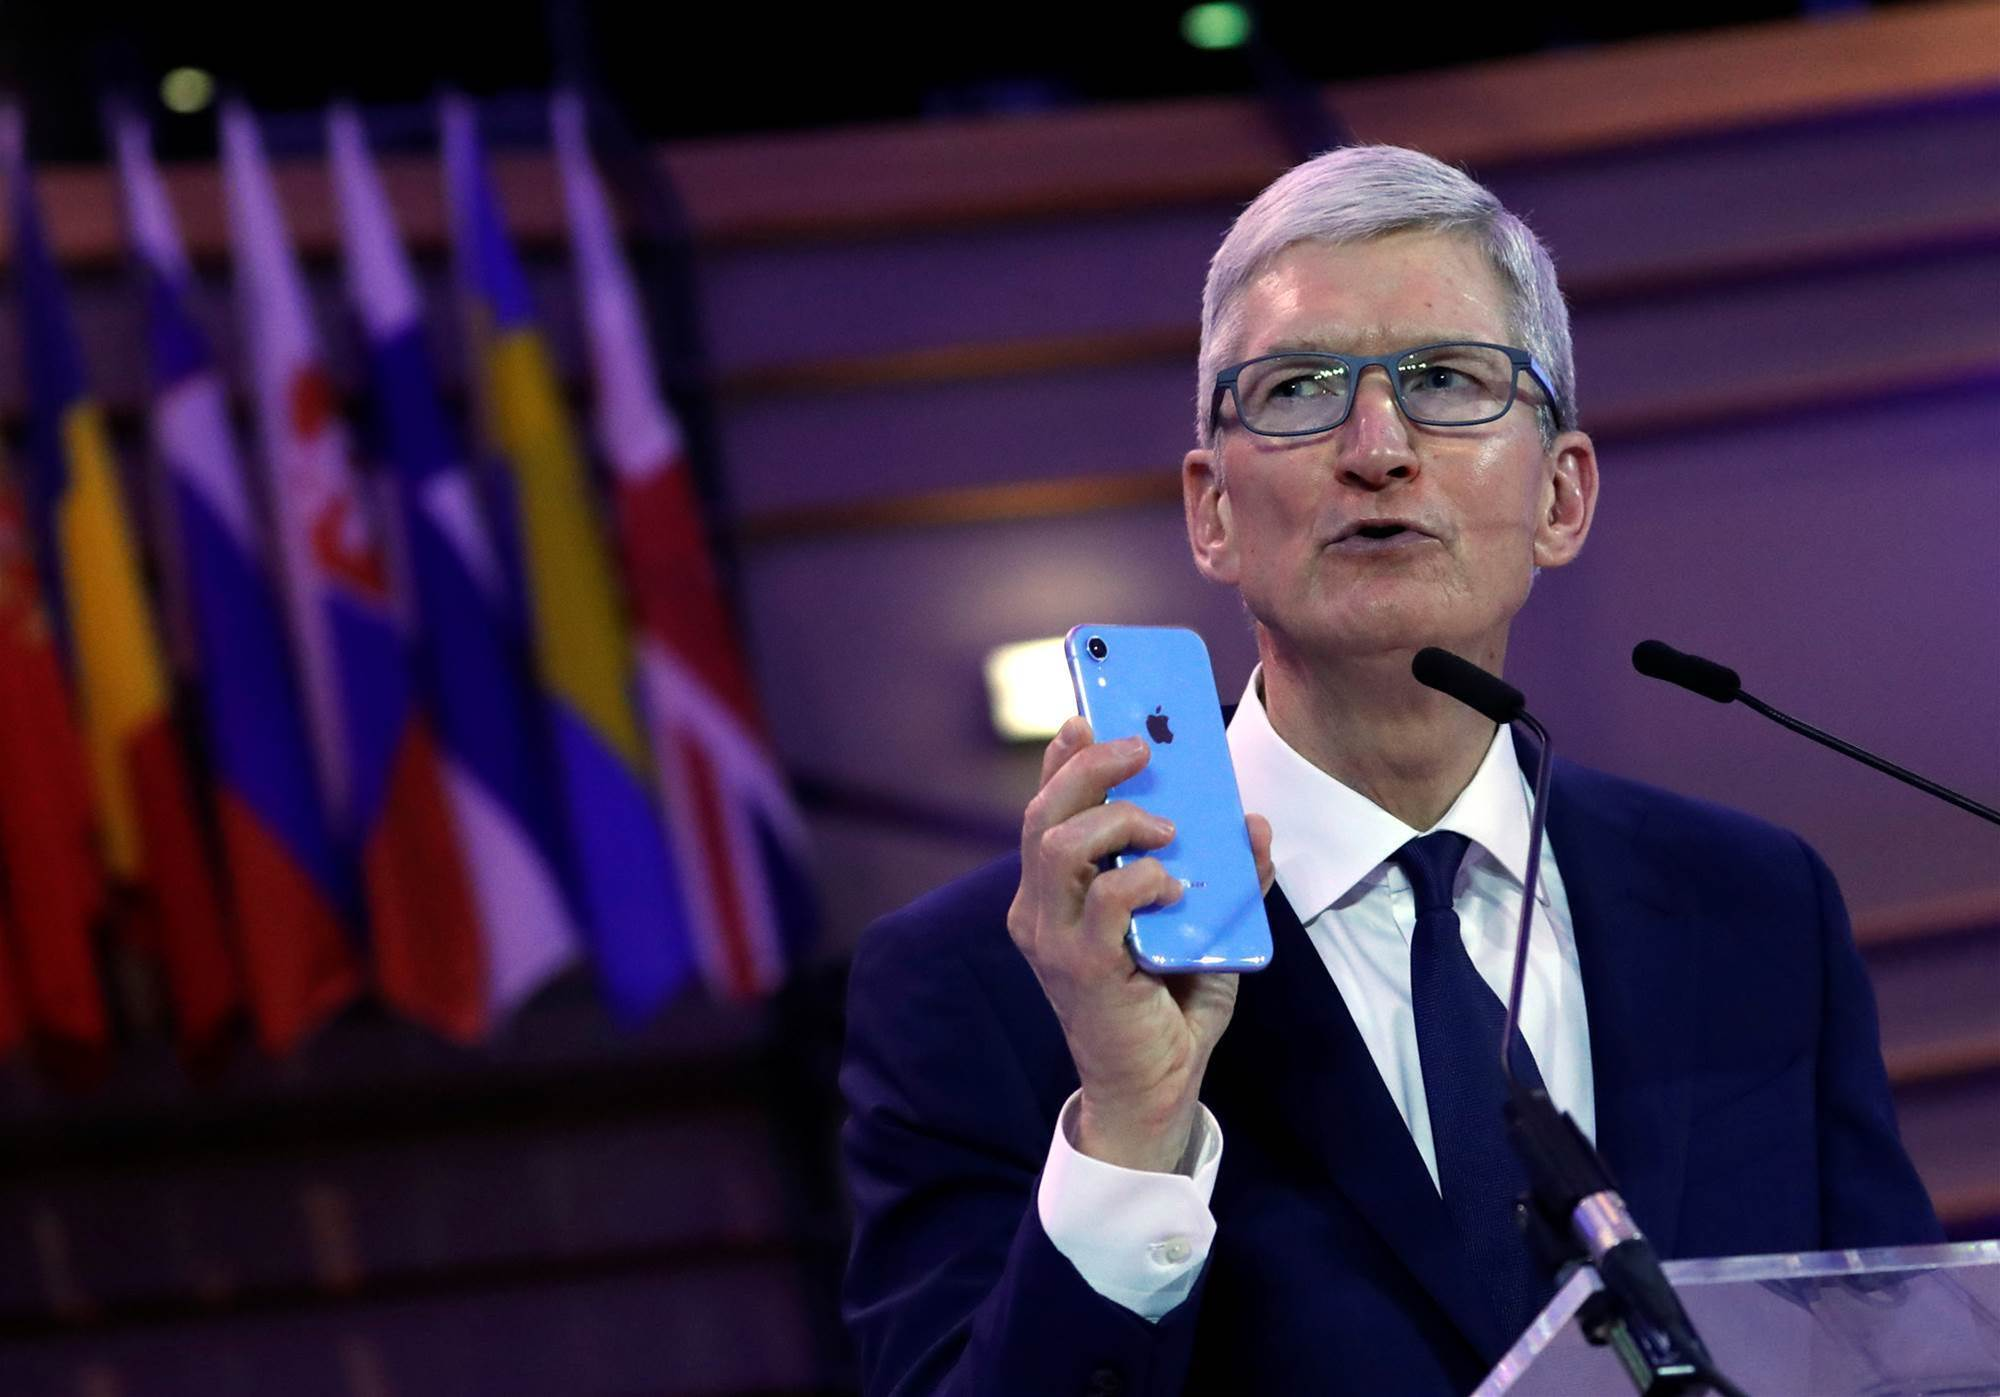 Apple boss takes aim at 'weaponisation' of customer data